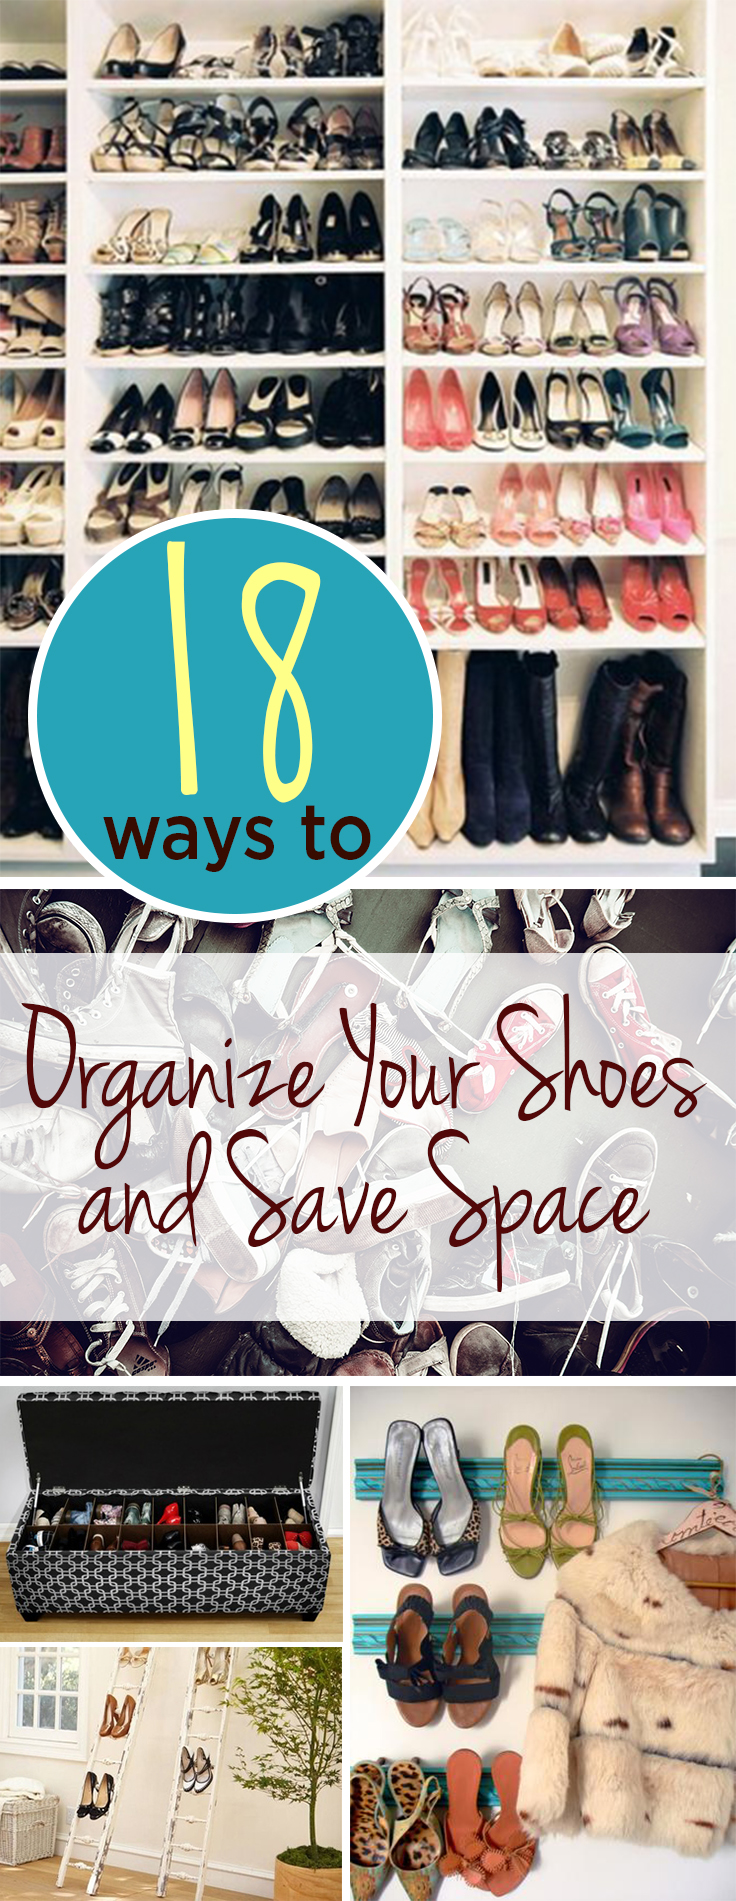 18 Ways to Organize Your Shoes and Save Space